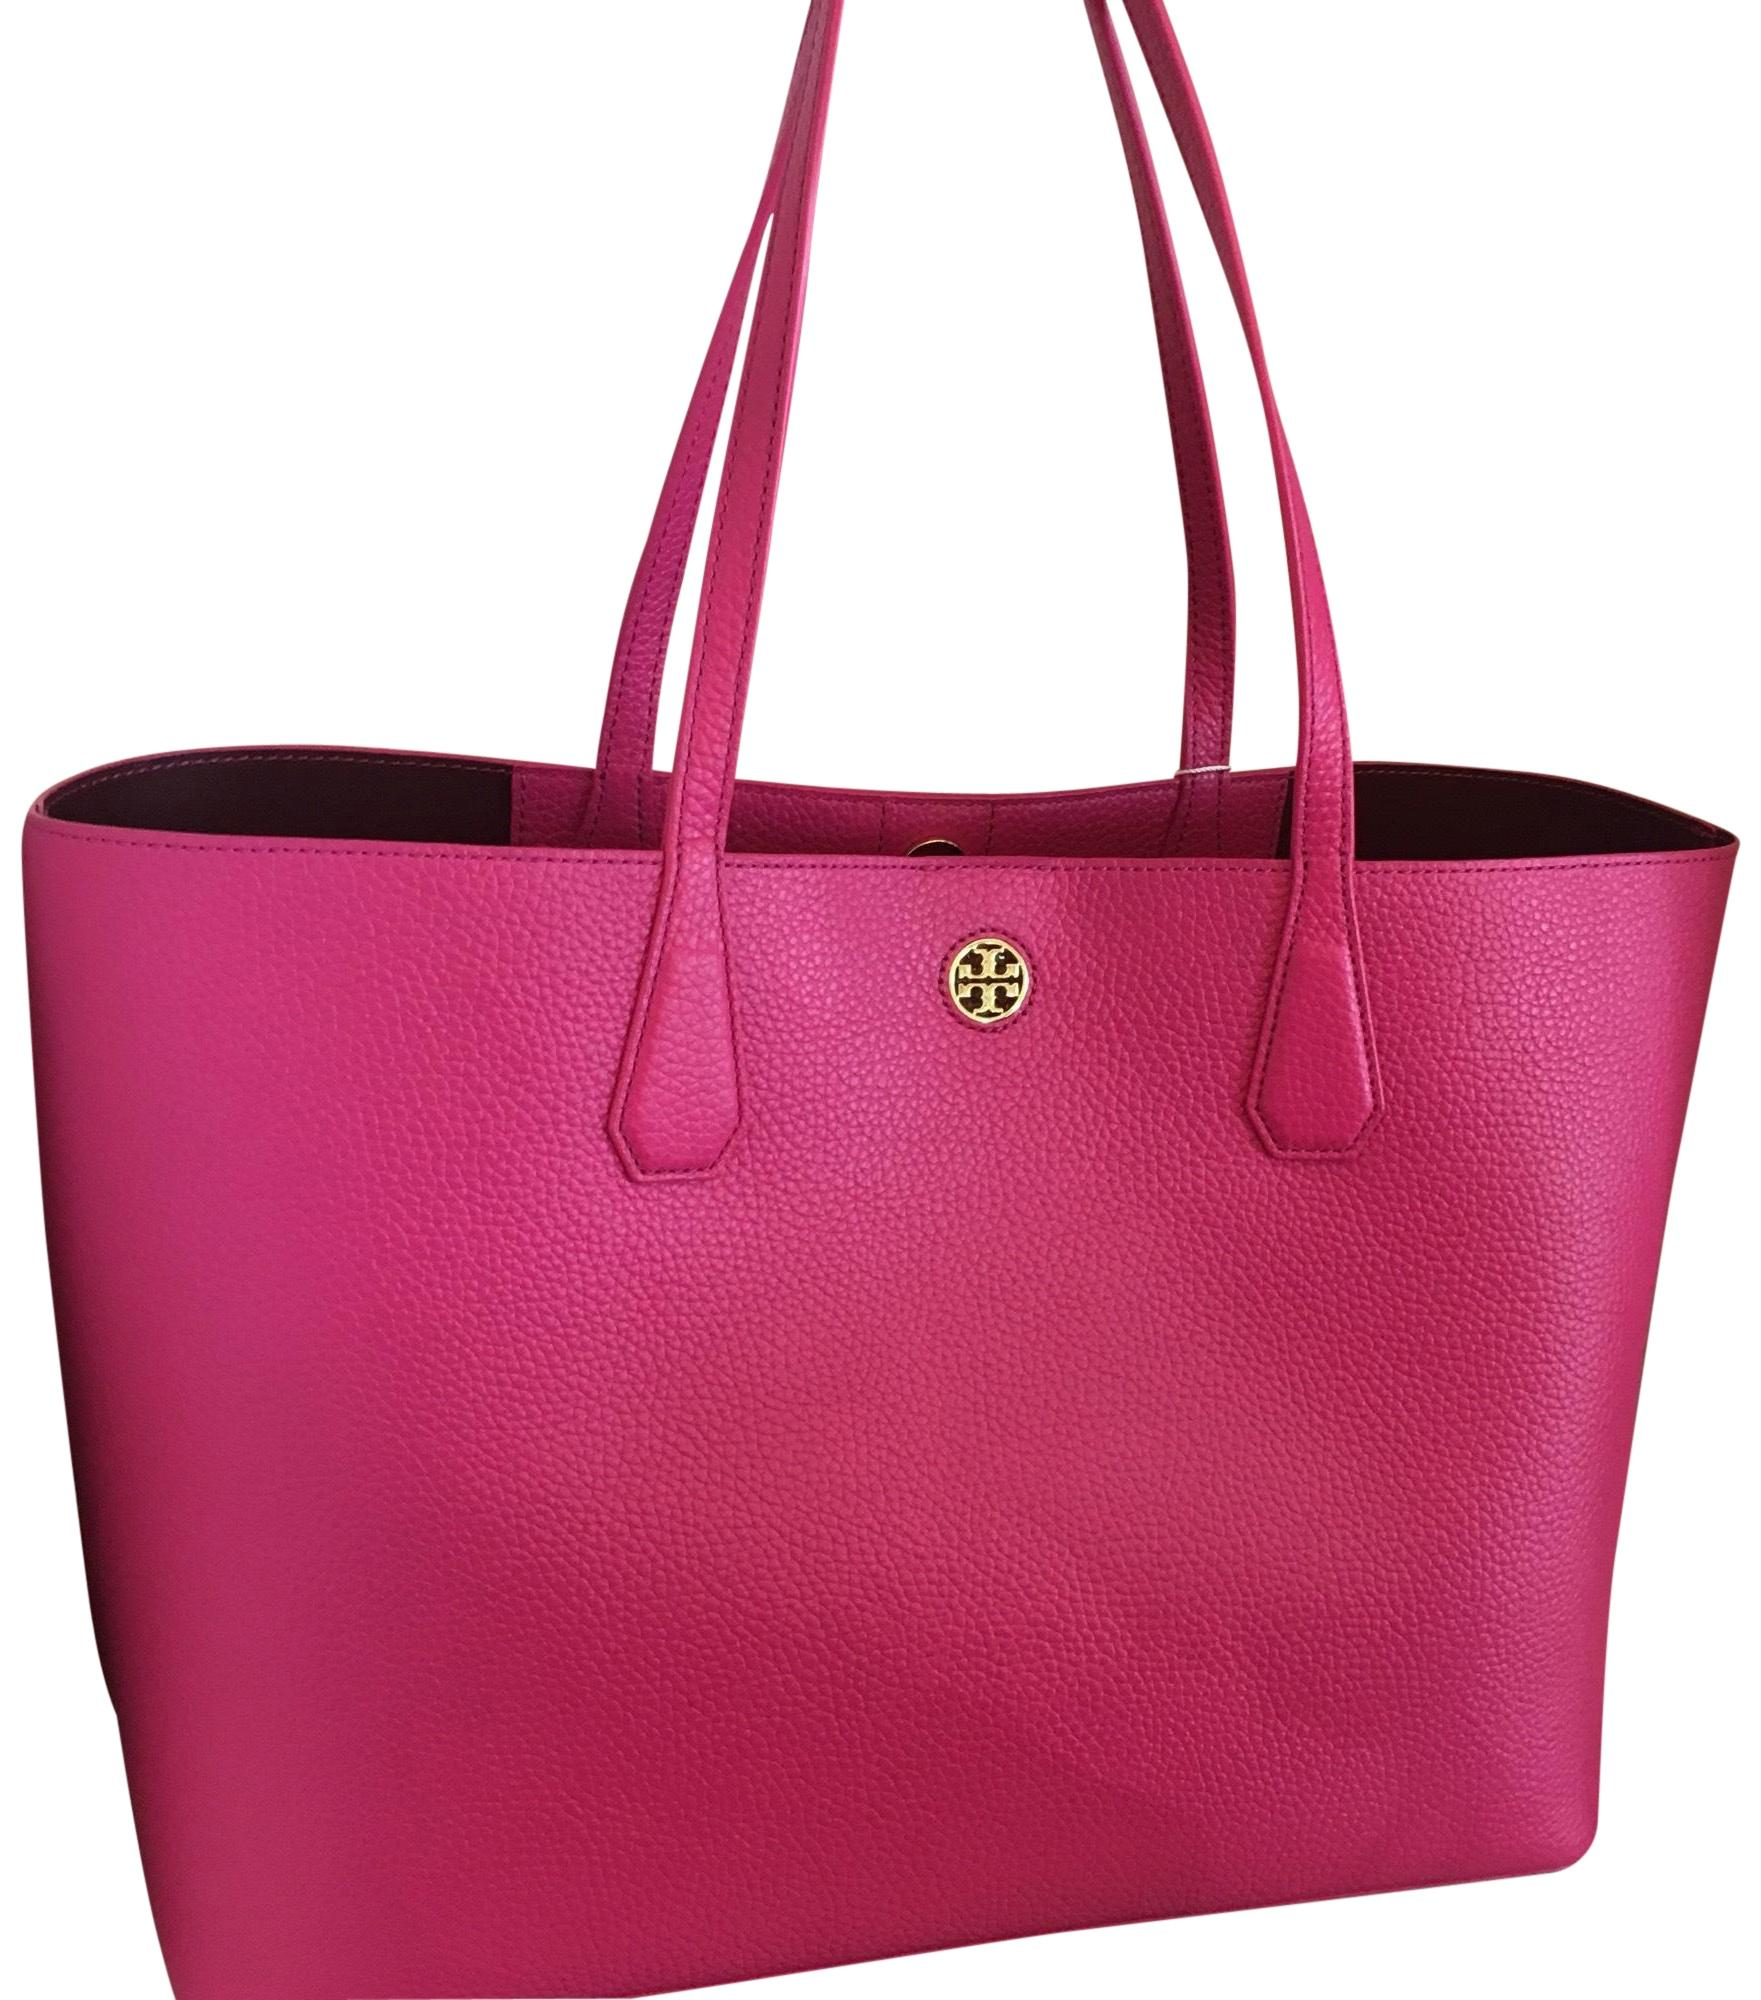 Tory Burch Hibiscus Port Flower Pebble Leather Perry Tote